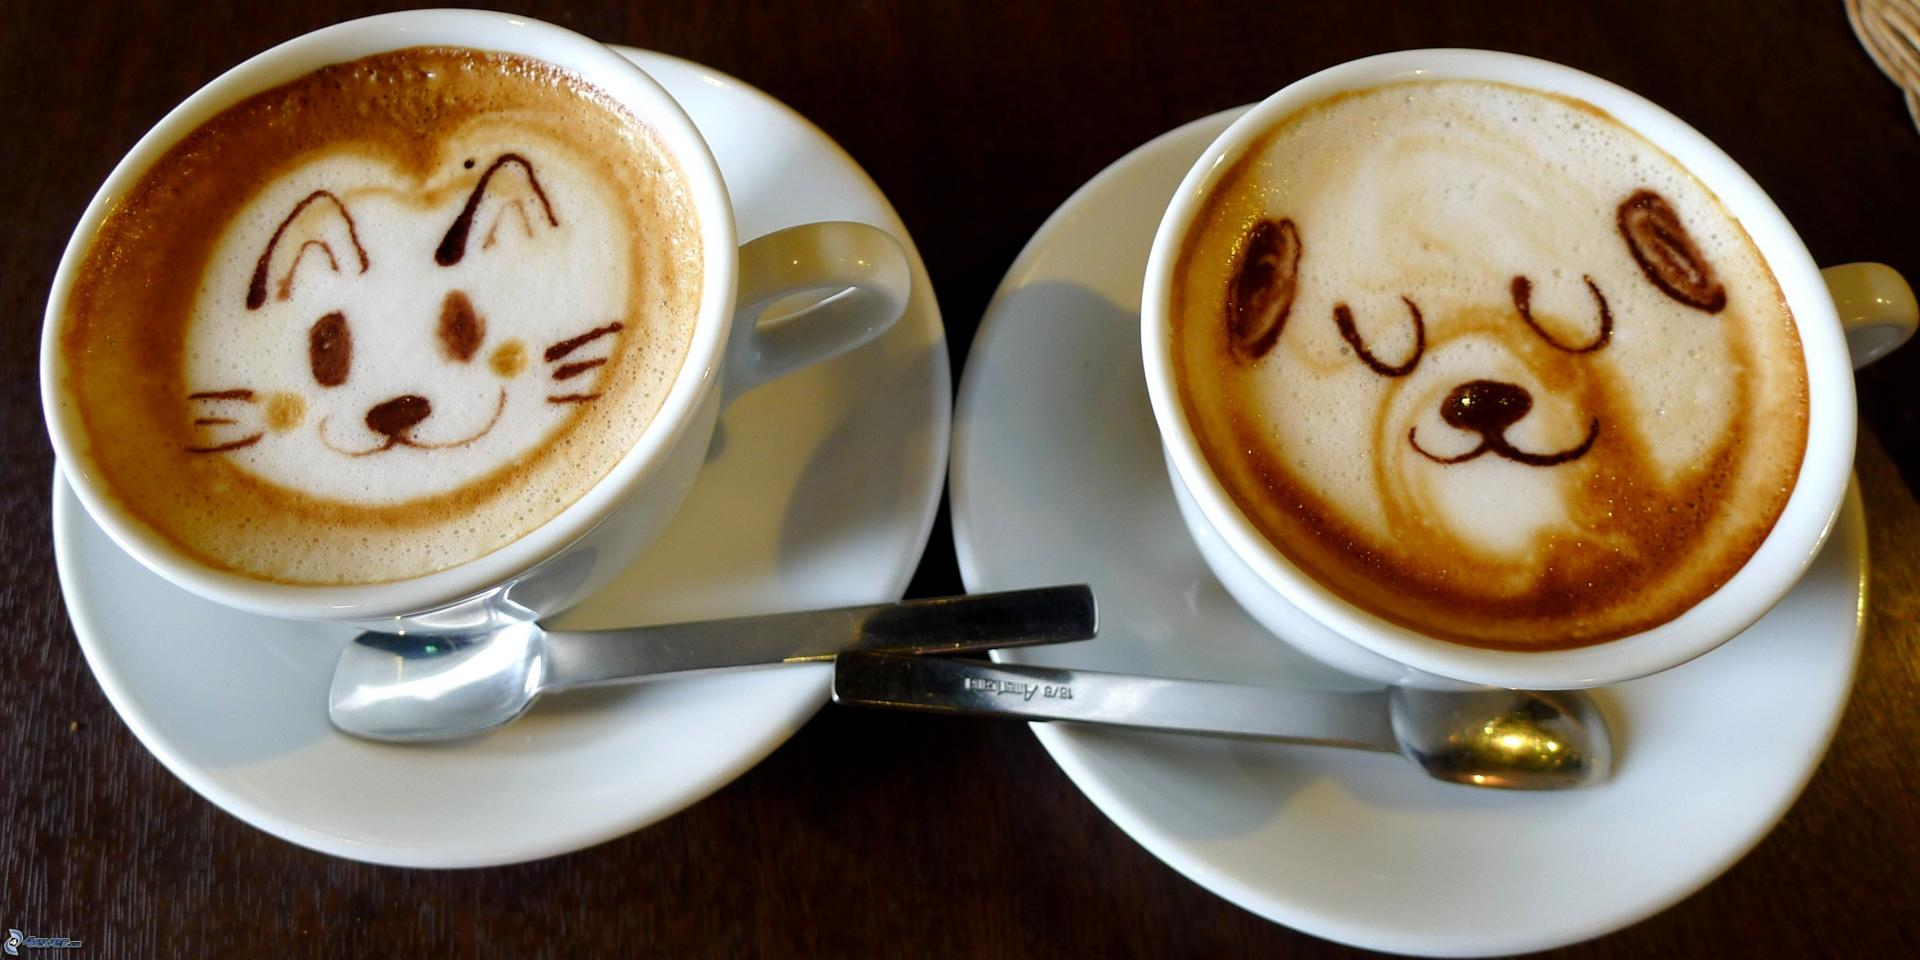 Tasse de cafe latte art chat ours 208457